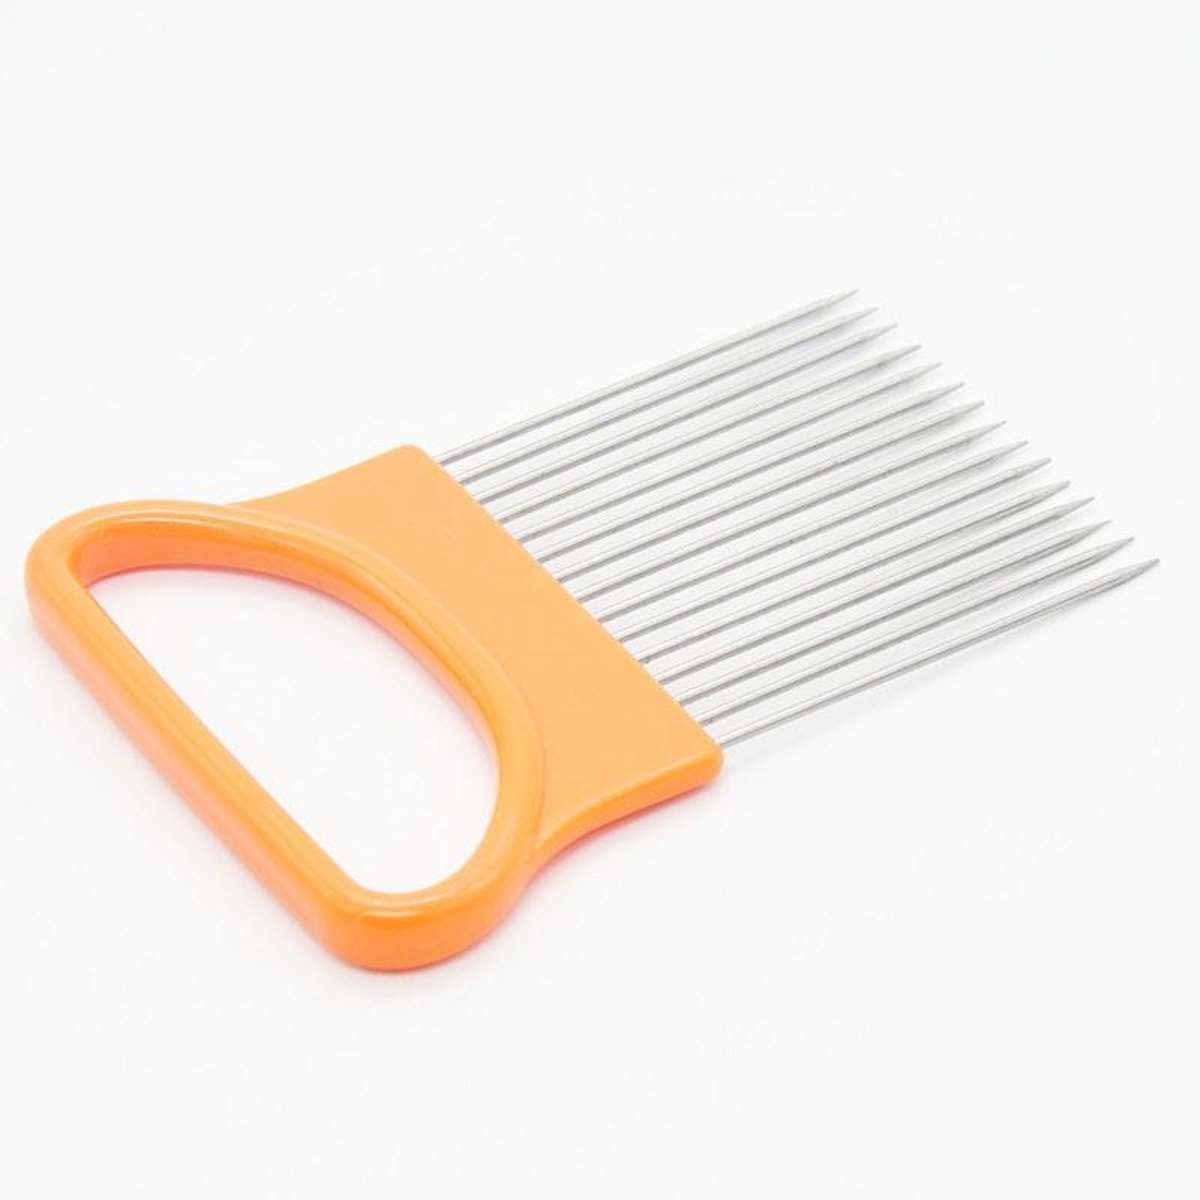 Tacoli- Kitchen Gadgets Handy Stainless Steel Onion Cutter Holder Potato Tomato Slicer Vegetable Fruit Cutter Safety Cooking Tools (ORANGE)